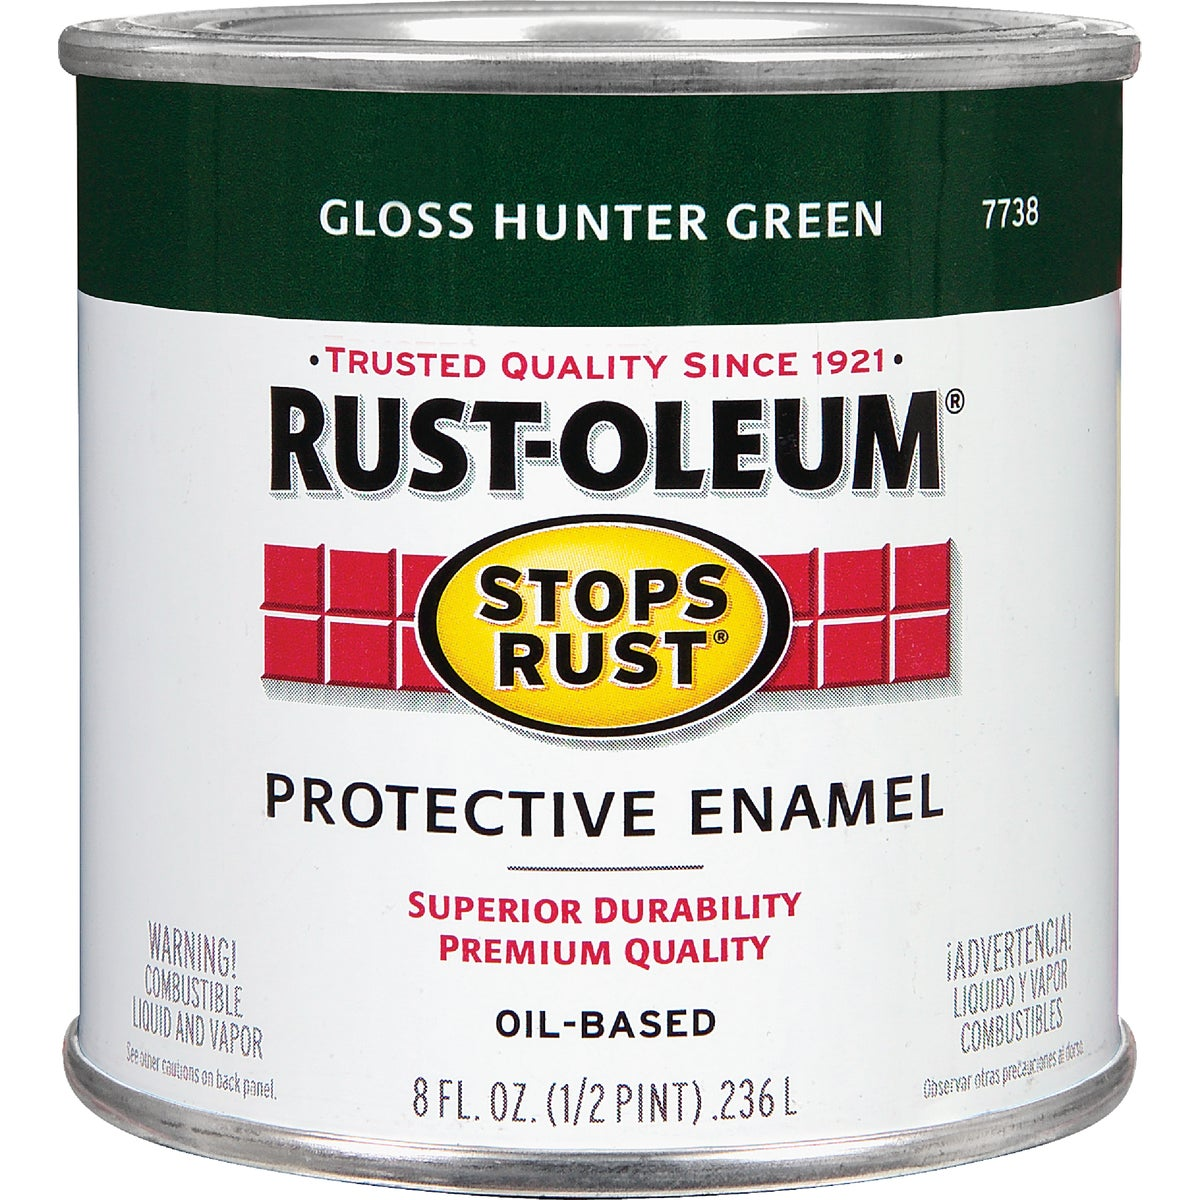 HUNTER GREEN ENAMEL - 7738-730 by Rustoleum